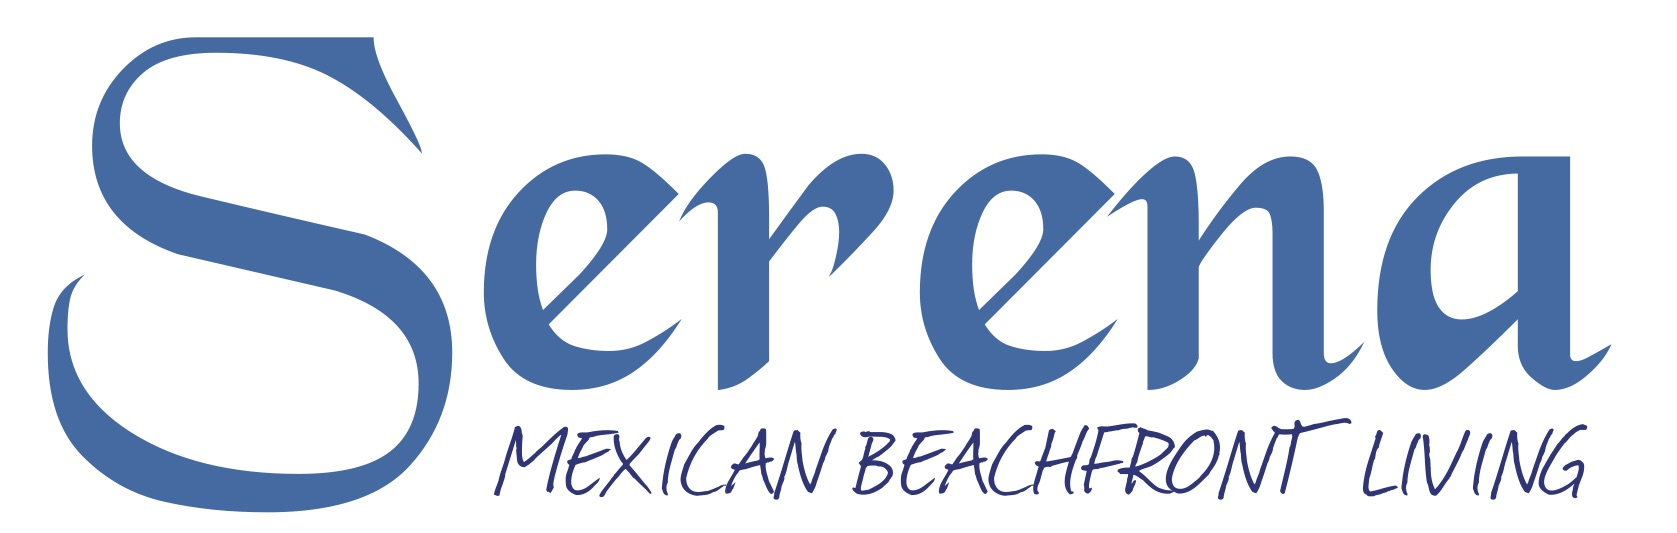 Serena Mexican Beachfront Living logo.jpg